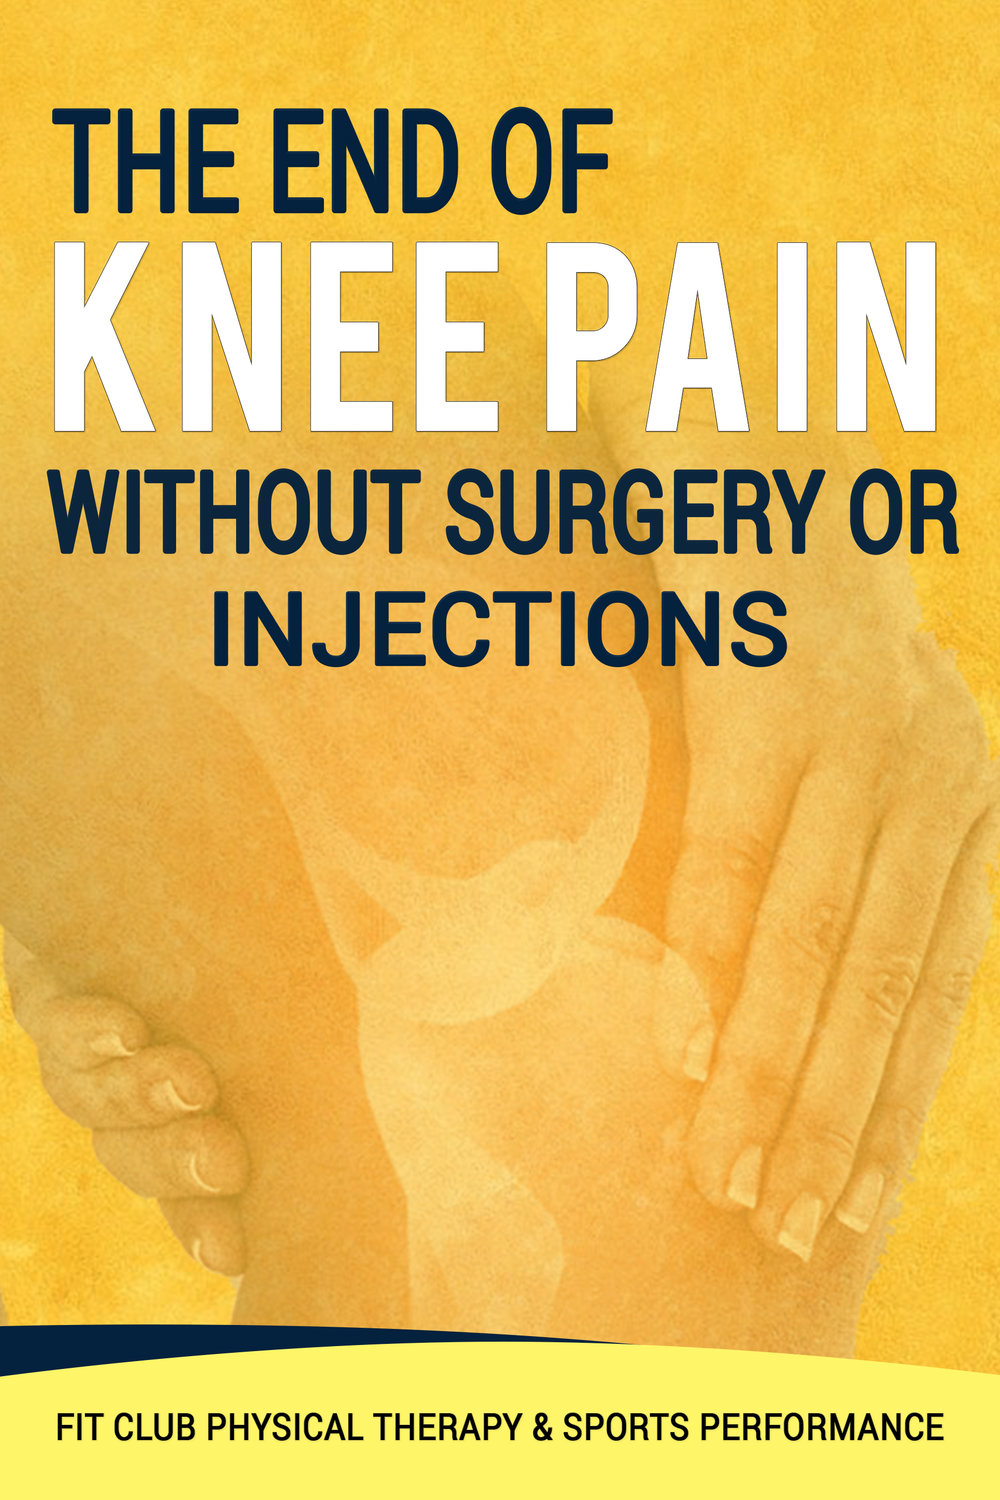 Free Knee Pain Report - Click image to receive your free report now!